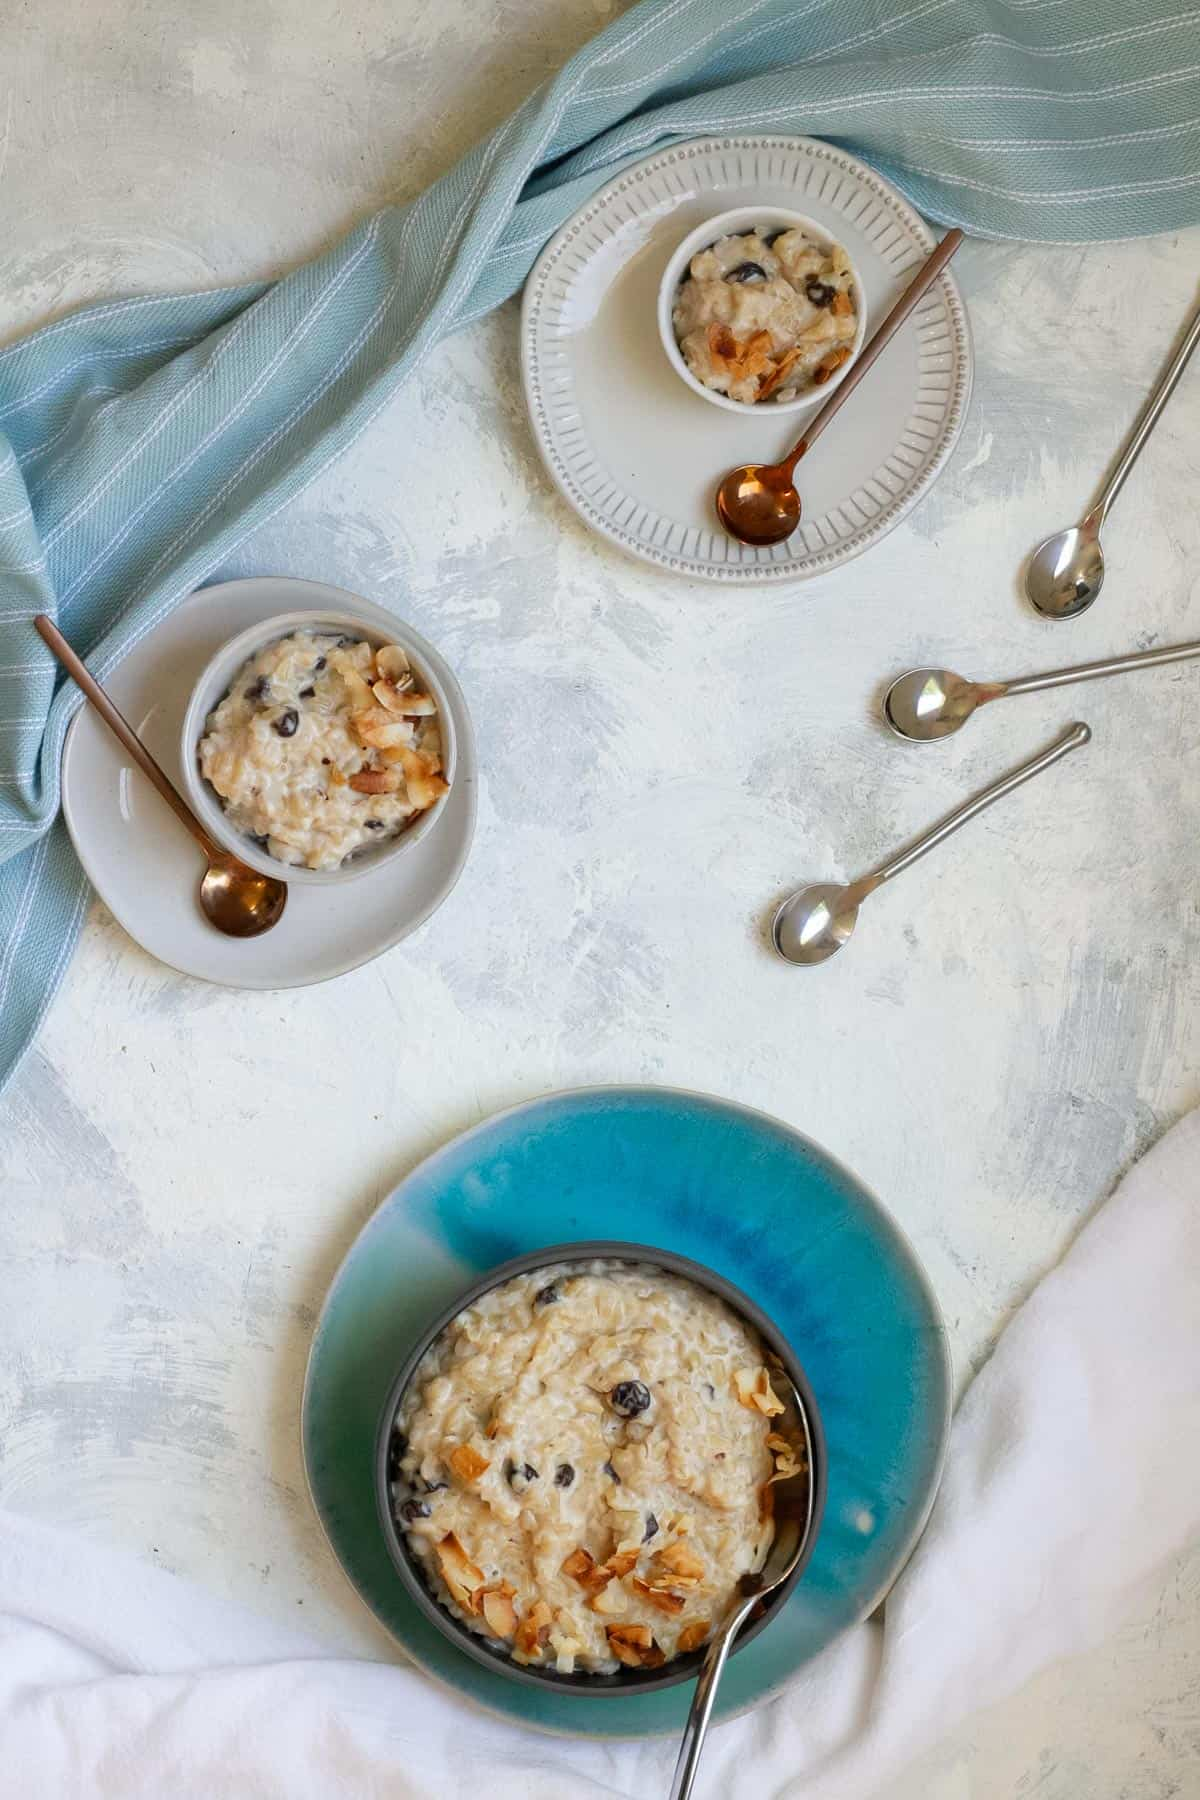 Brown rice pudding in serving dishes